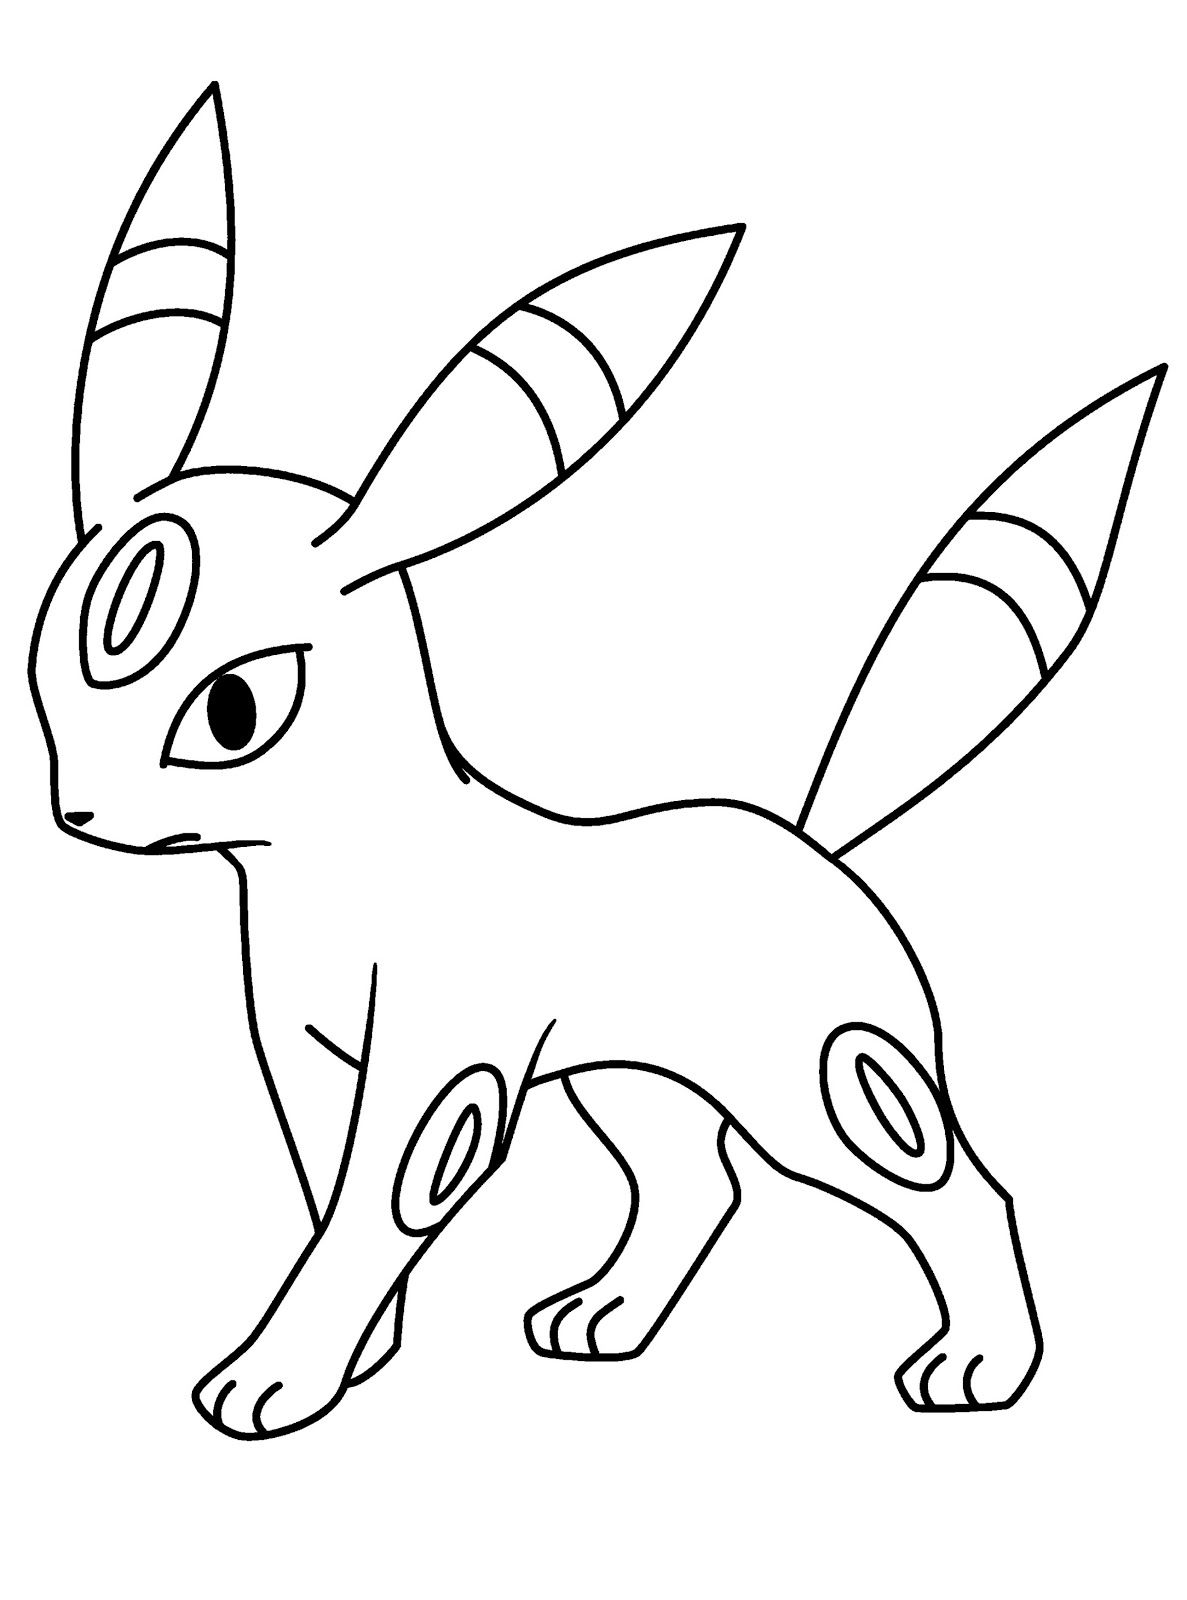 Printable Umbreon Pokemon Coloring Pages Pokemon Coloring Pages Pokemon Coloring Pokemon Drawings